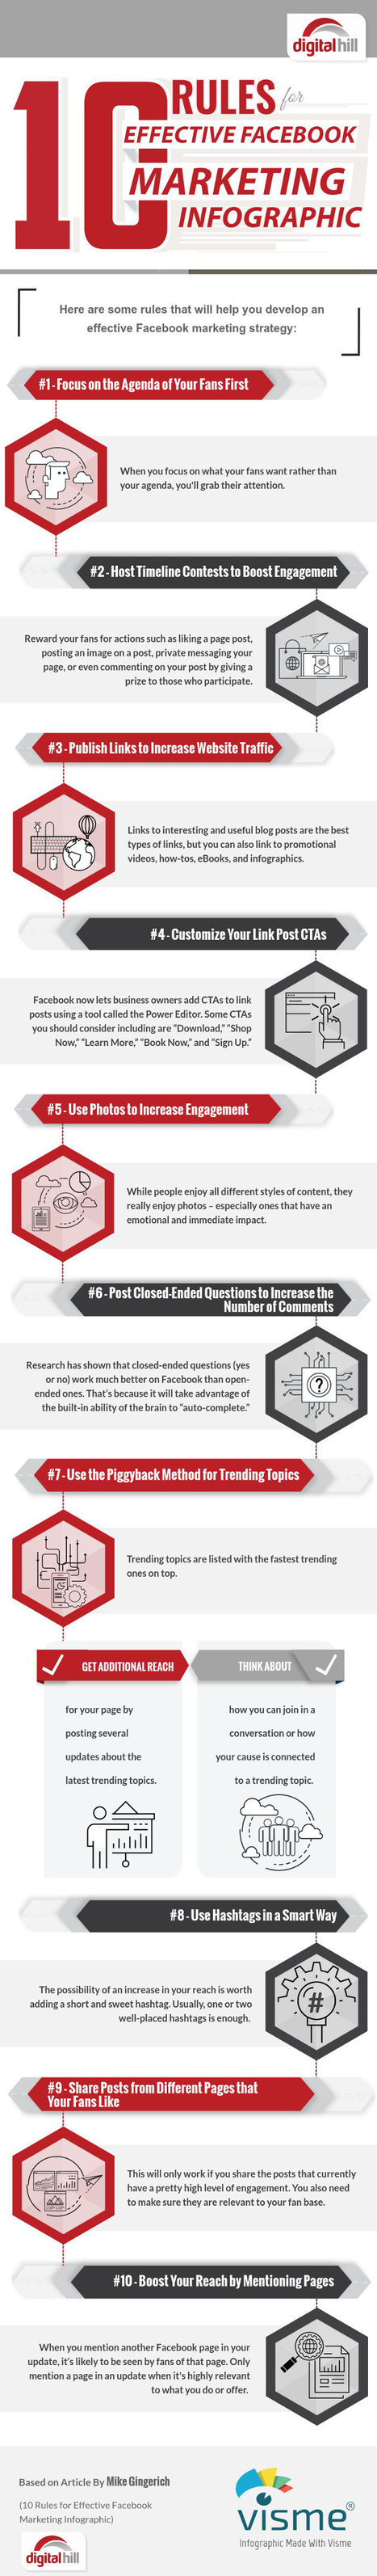 10 Rules for Effective Facebook Marketing [Infographic] | Integrated Brand Communications | Scoop.it